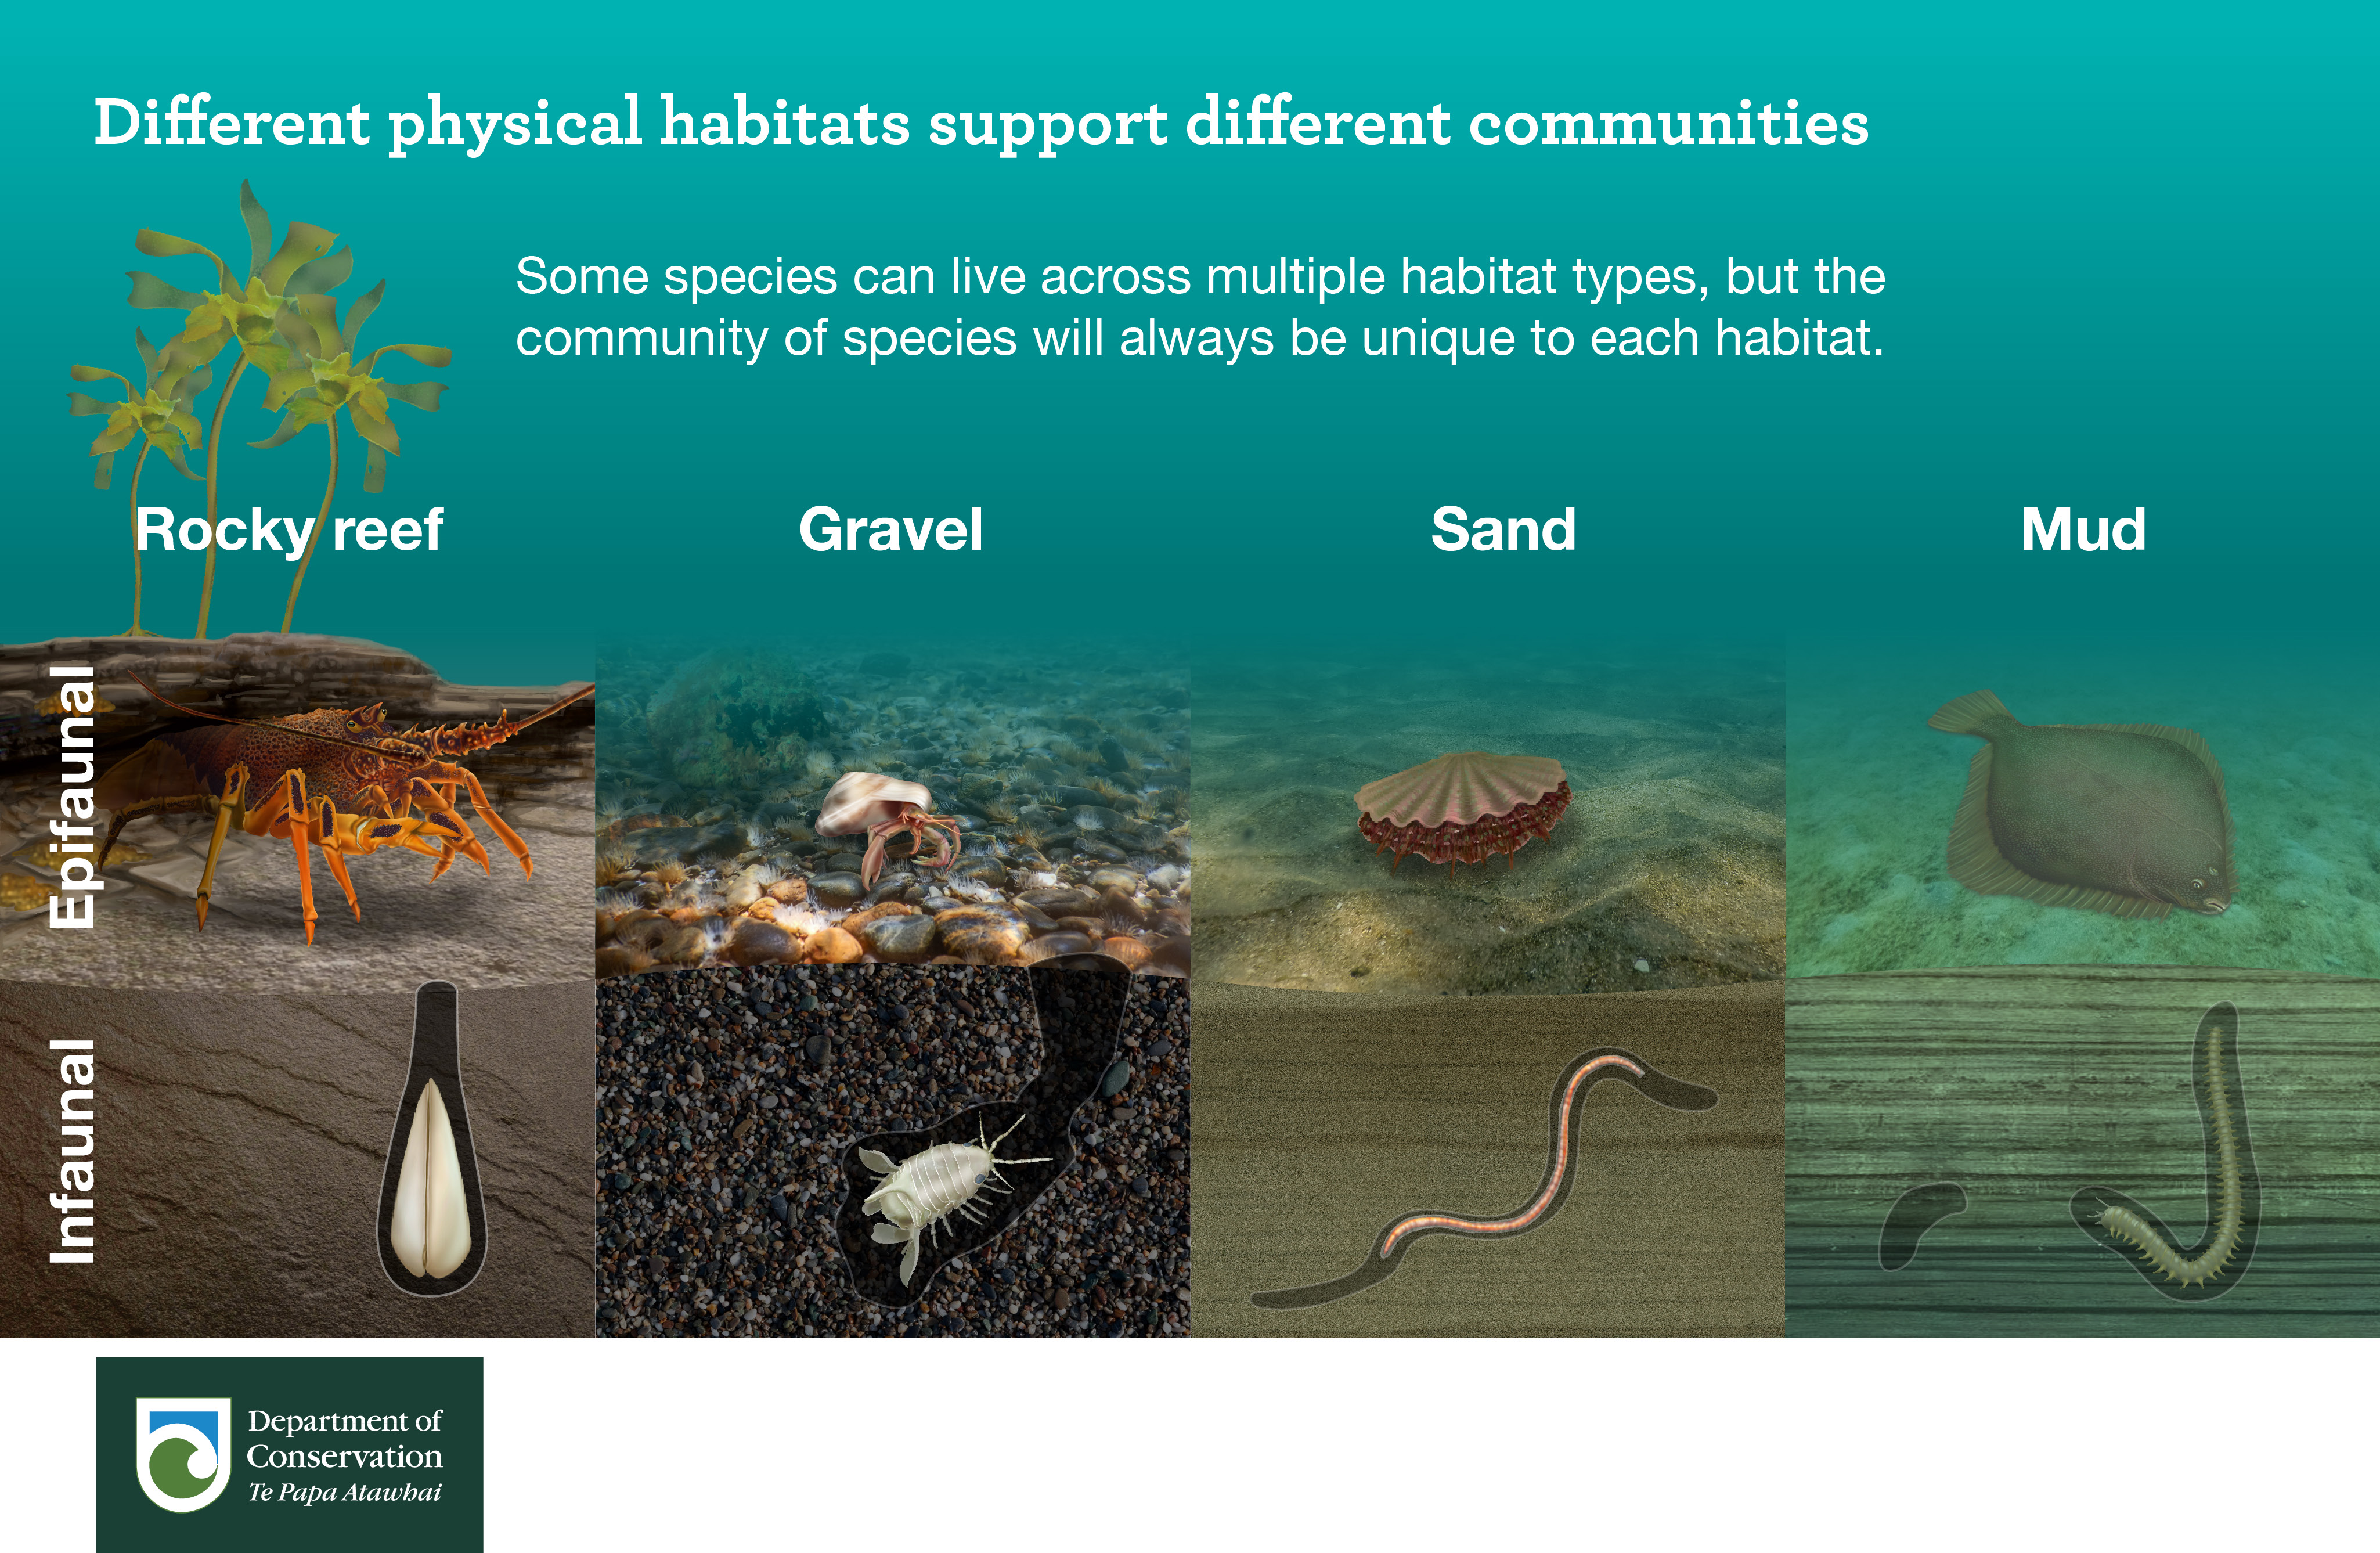 Different physical habitats support different communities